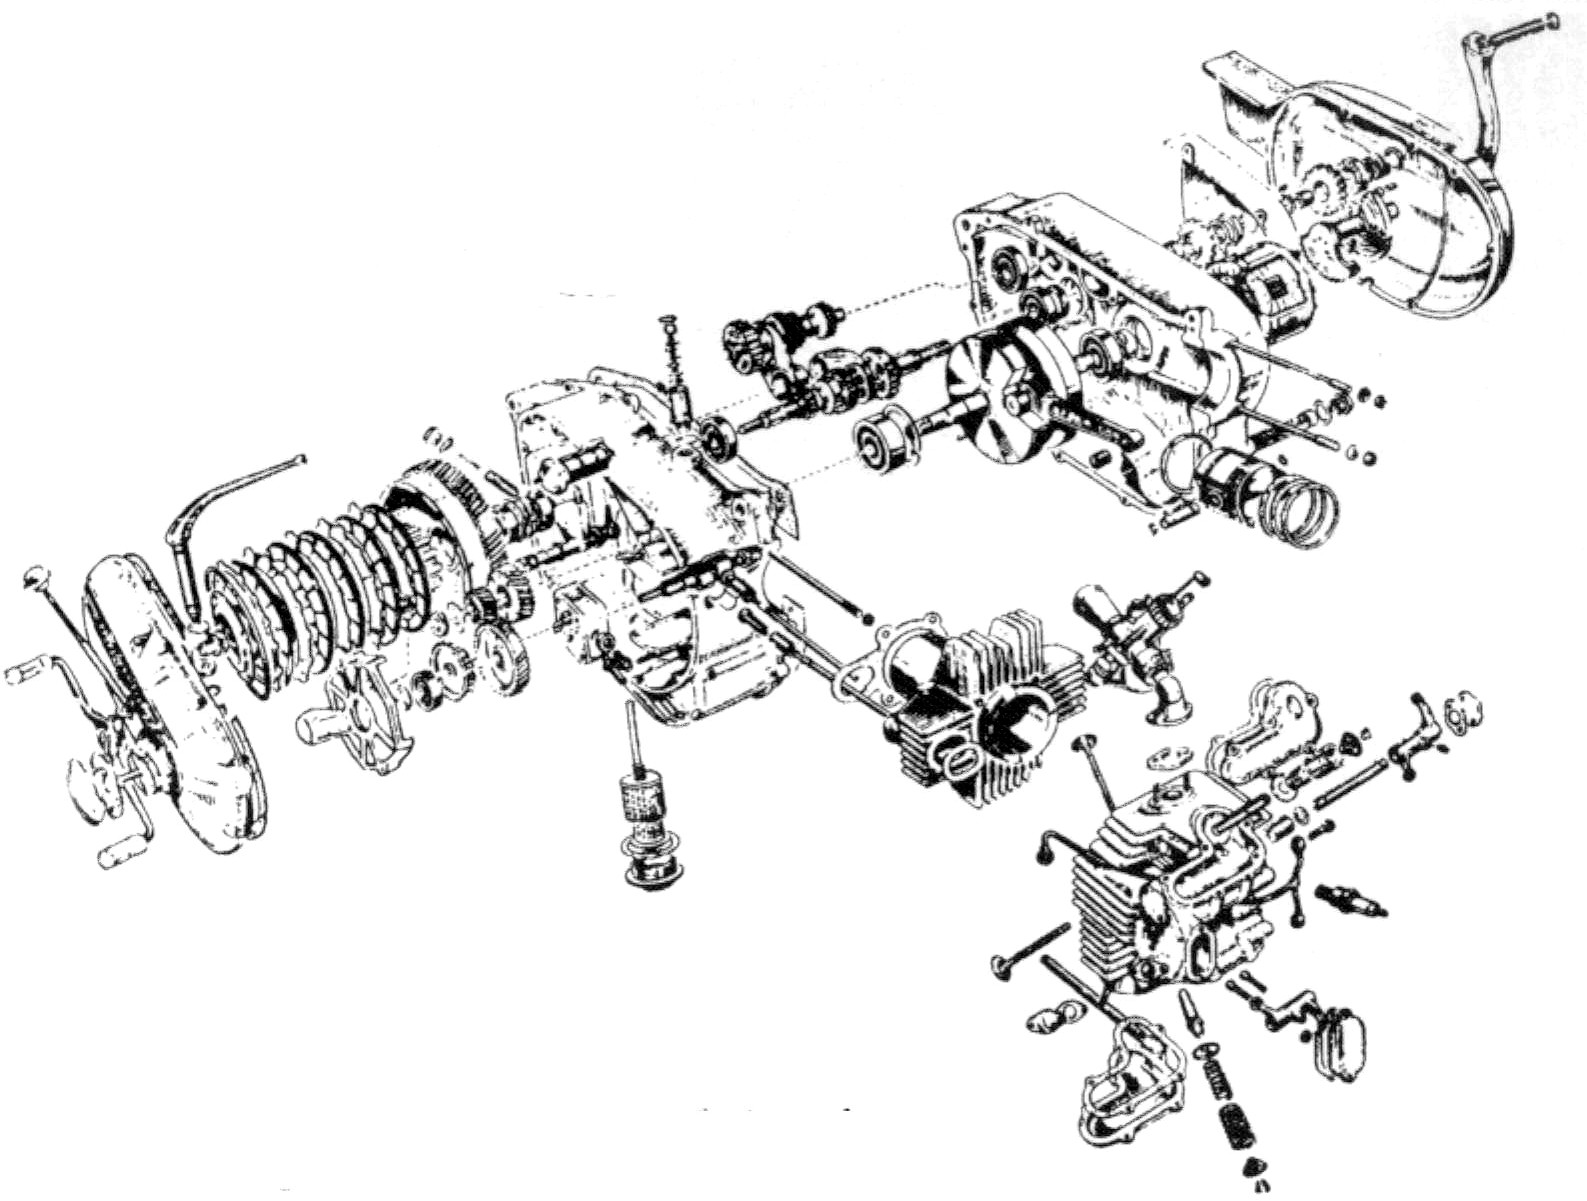 Amazing exploded view of car parts photos electrical circuit